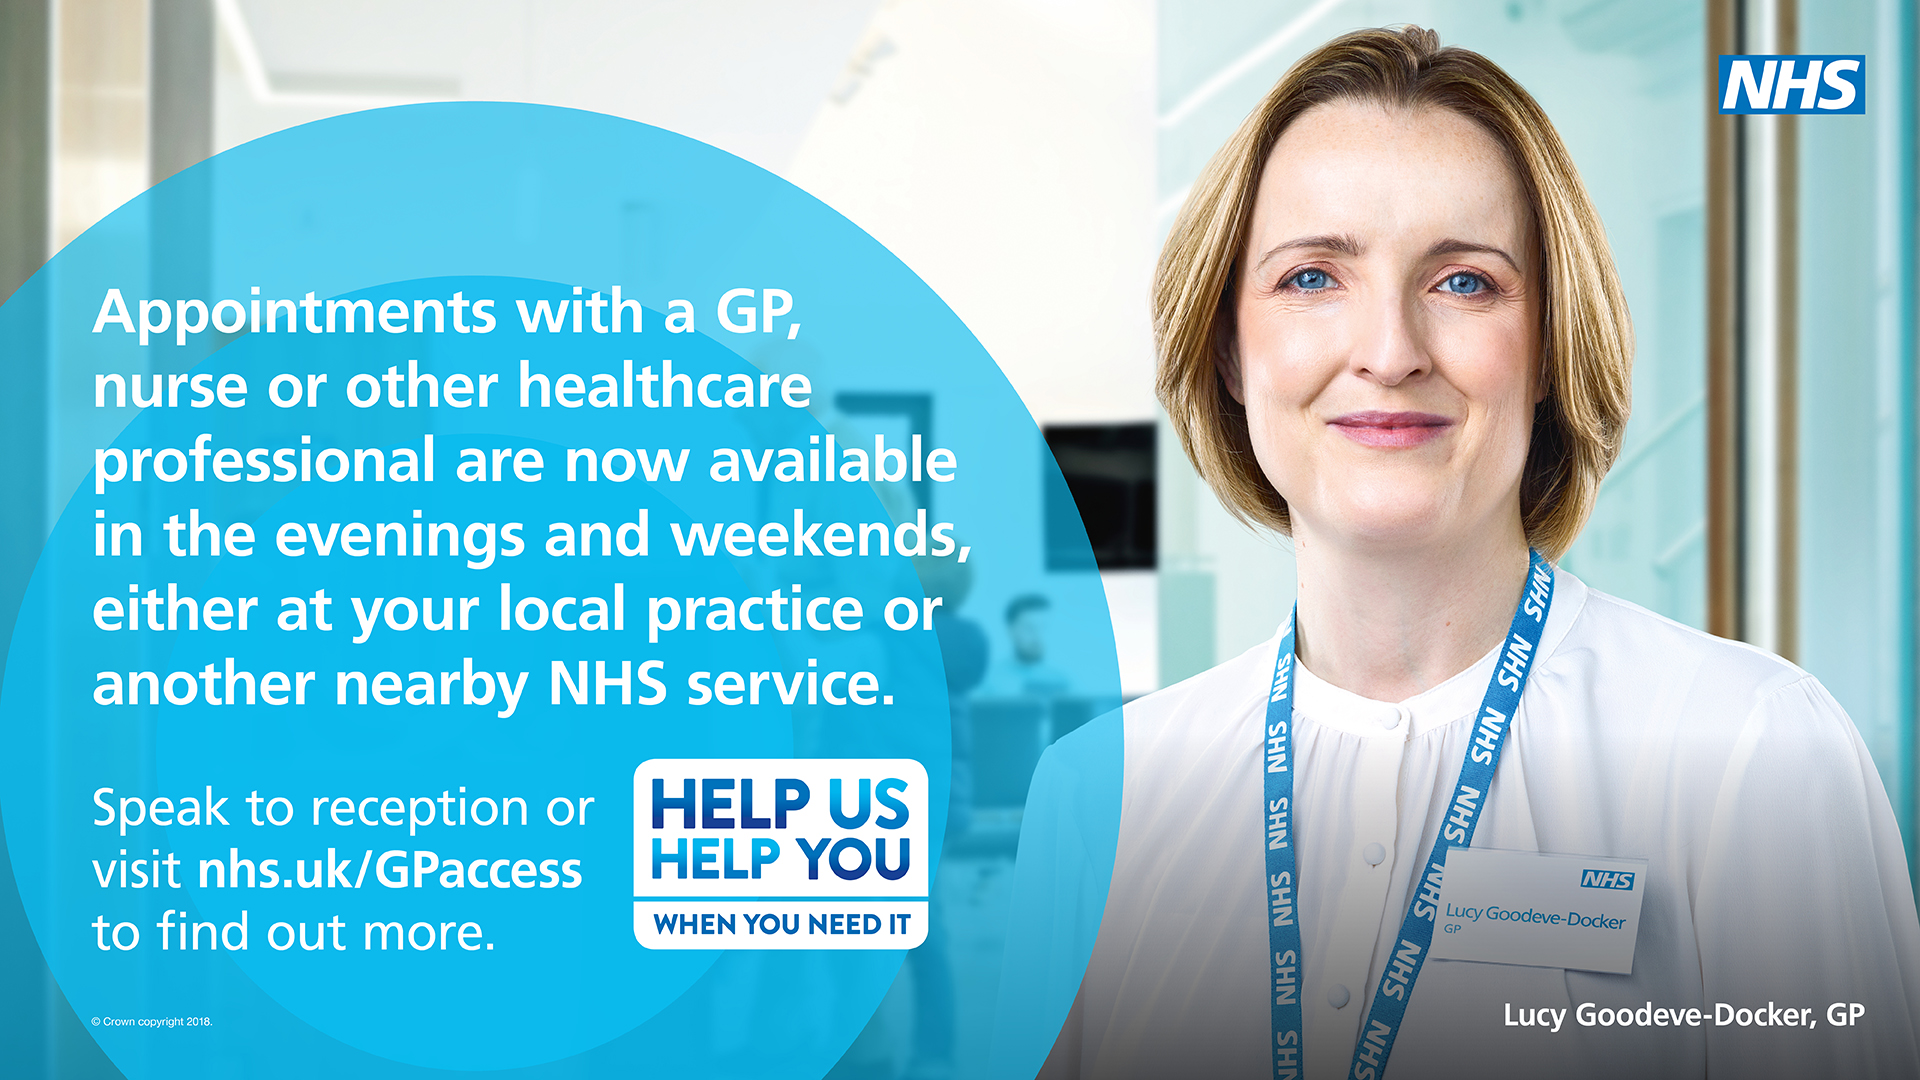 Appointments with a GP, nurse of other healthcare professional are now available in the evenings and weekends, either at your local practice or another nearby NHS service